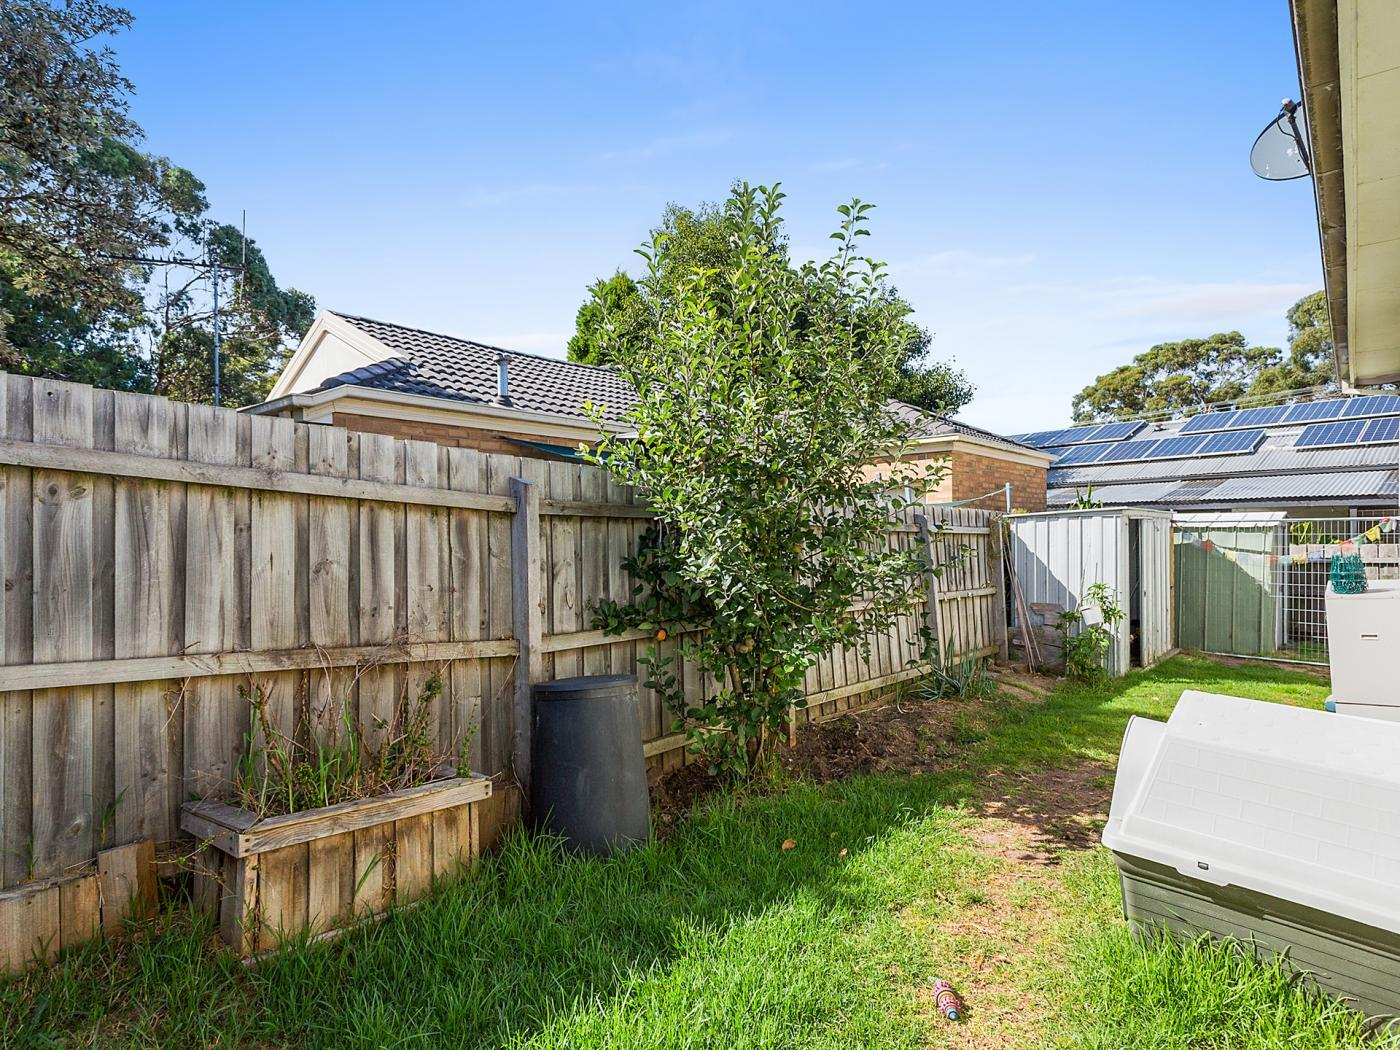 Homes for sale crib point vic - 1 330 Stony Point Road Crib Point Vic 3919 Sale Rental History Property 360